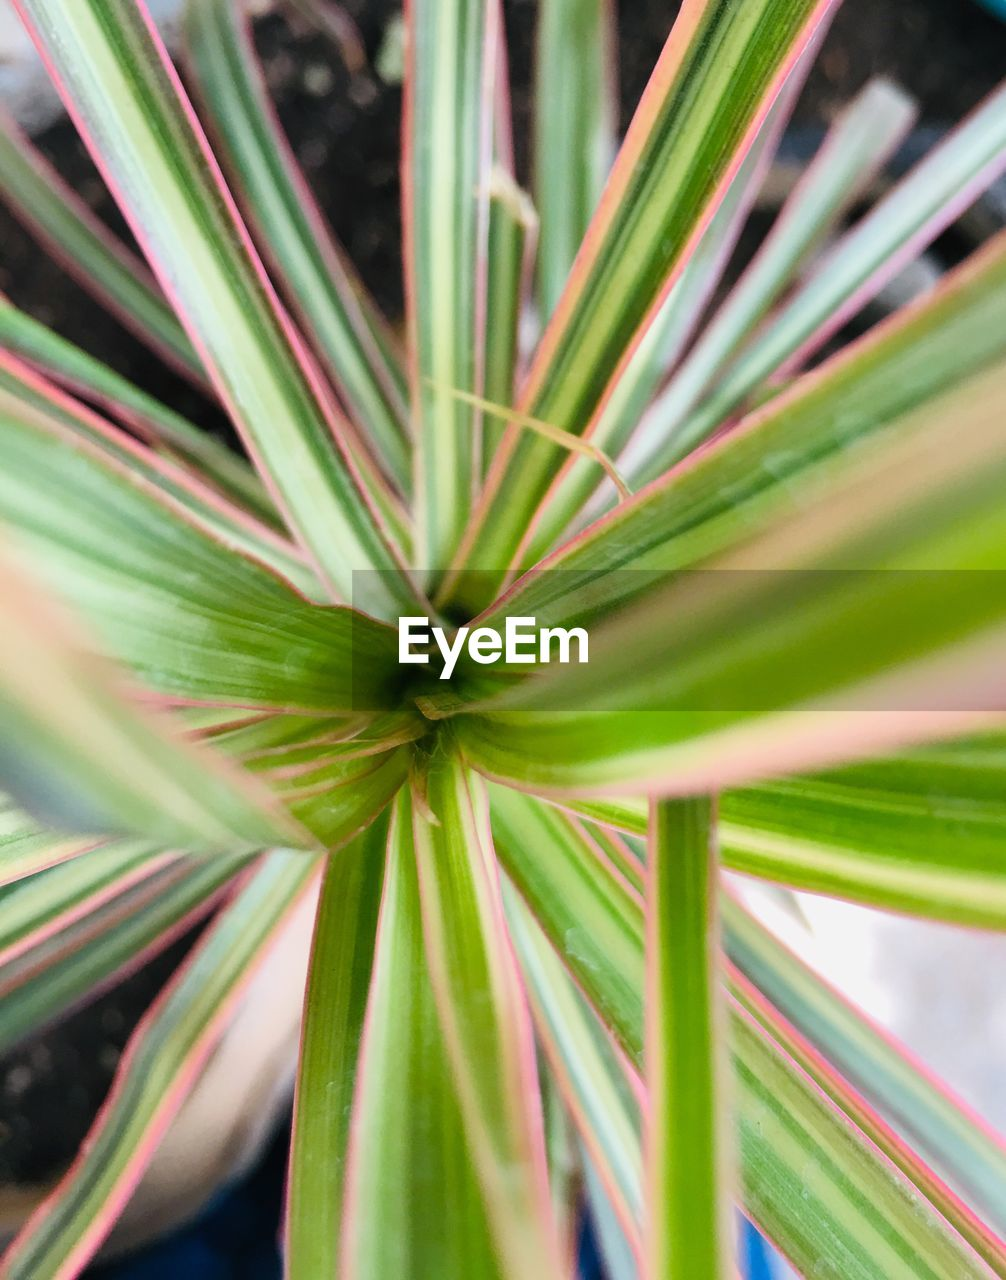 green color, growth, plant part, plant, leaf, close-up, beauty in nature, day, no people, nature, selective focus, outdoors, focus on foreground, full frame, natural pattern, palm tree, backgrounds, botany, tropical climate, freshness, palm leaf